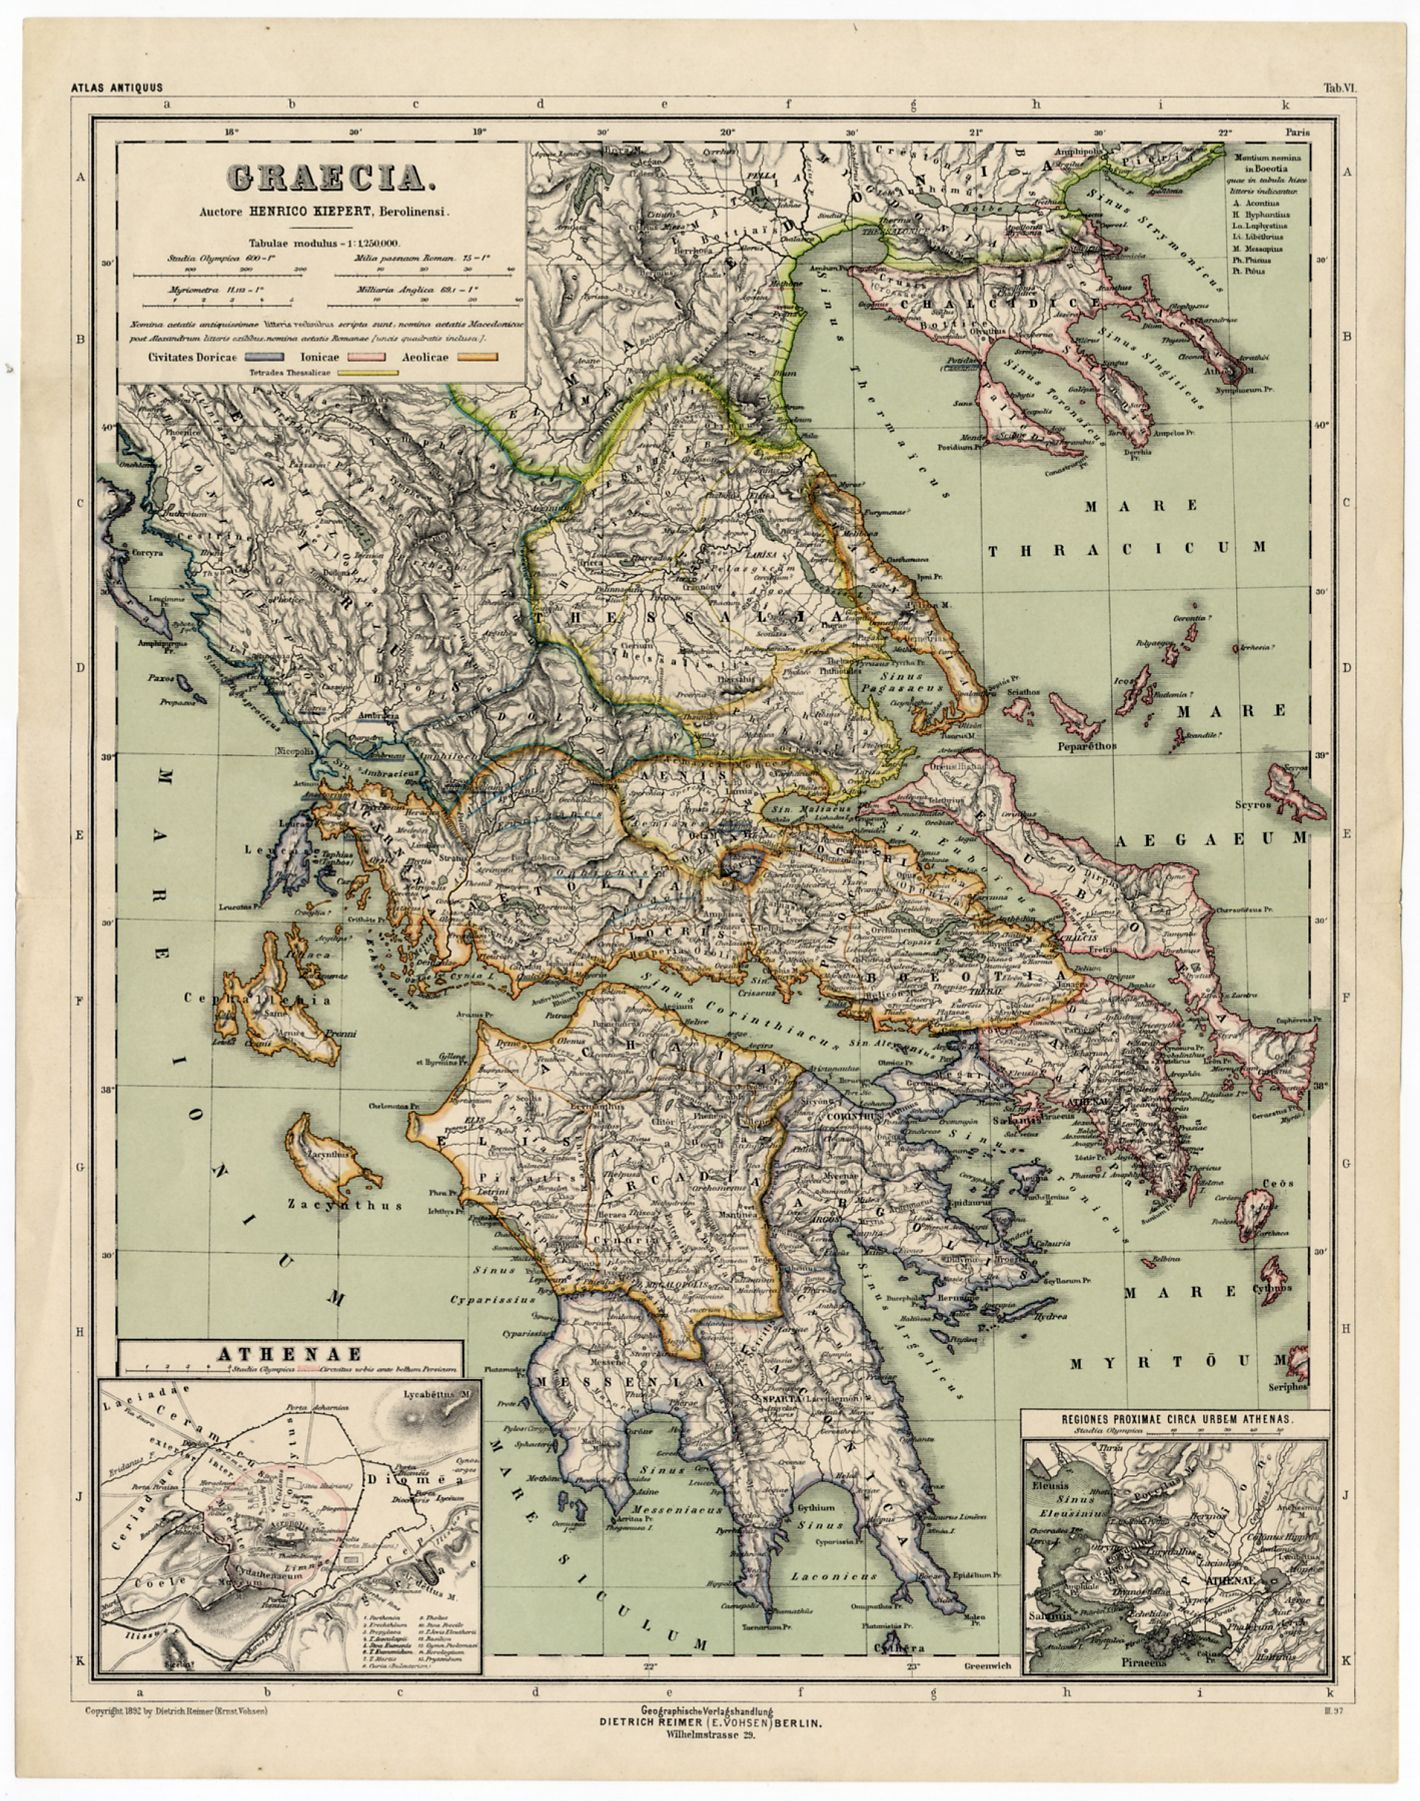 Pin by vintage magazines newspapers prints sleekburn on antique maps antique maps the greeks ancient greece ebay greek islands beautiful greek isles old maps gumiabroncs Choice Image